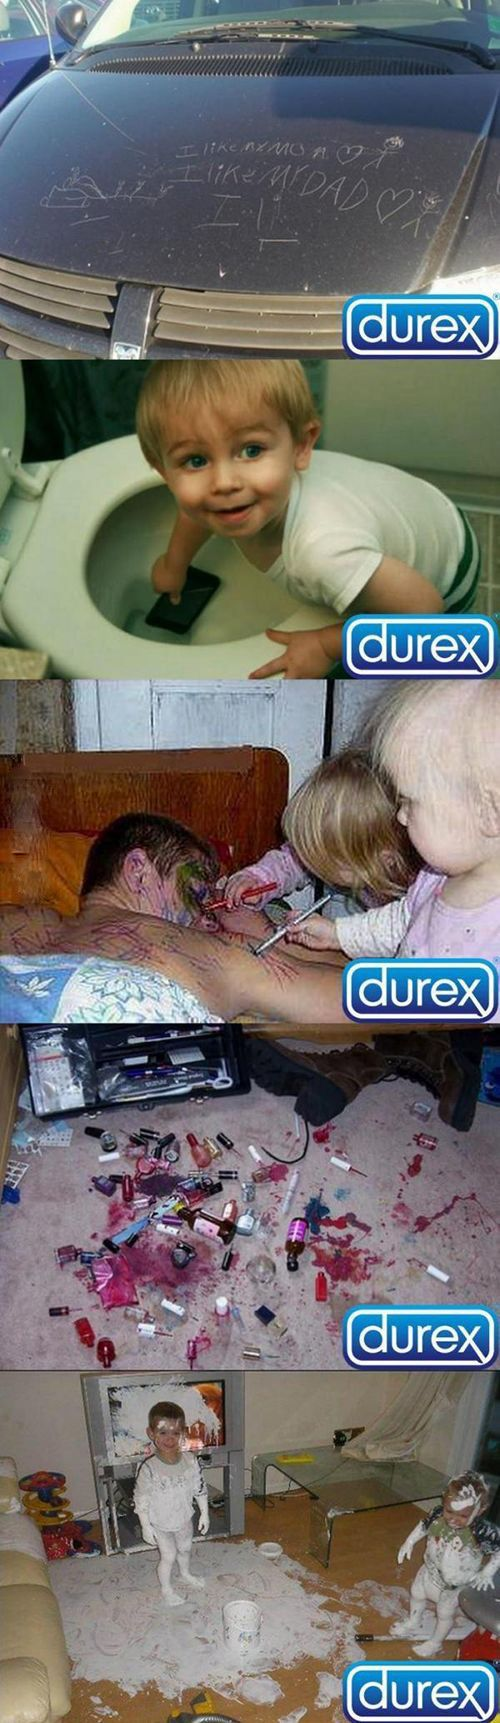 Durex is the solution